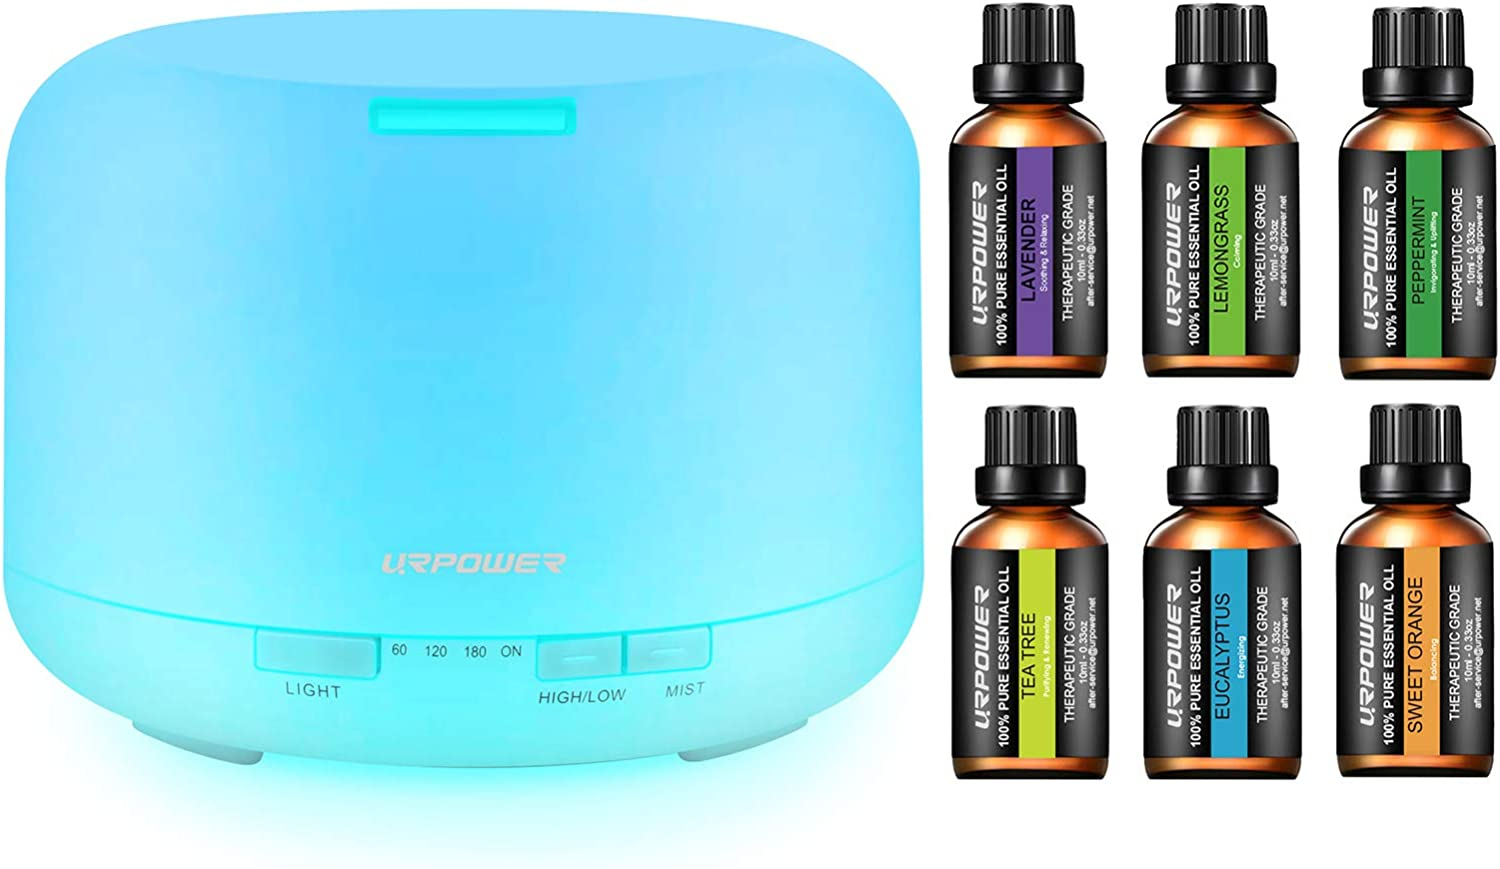 URPOWER Upgraded 500ML Essential Oil Credence Humidifiers with 2021 new Diffuser 6